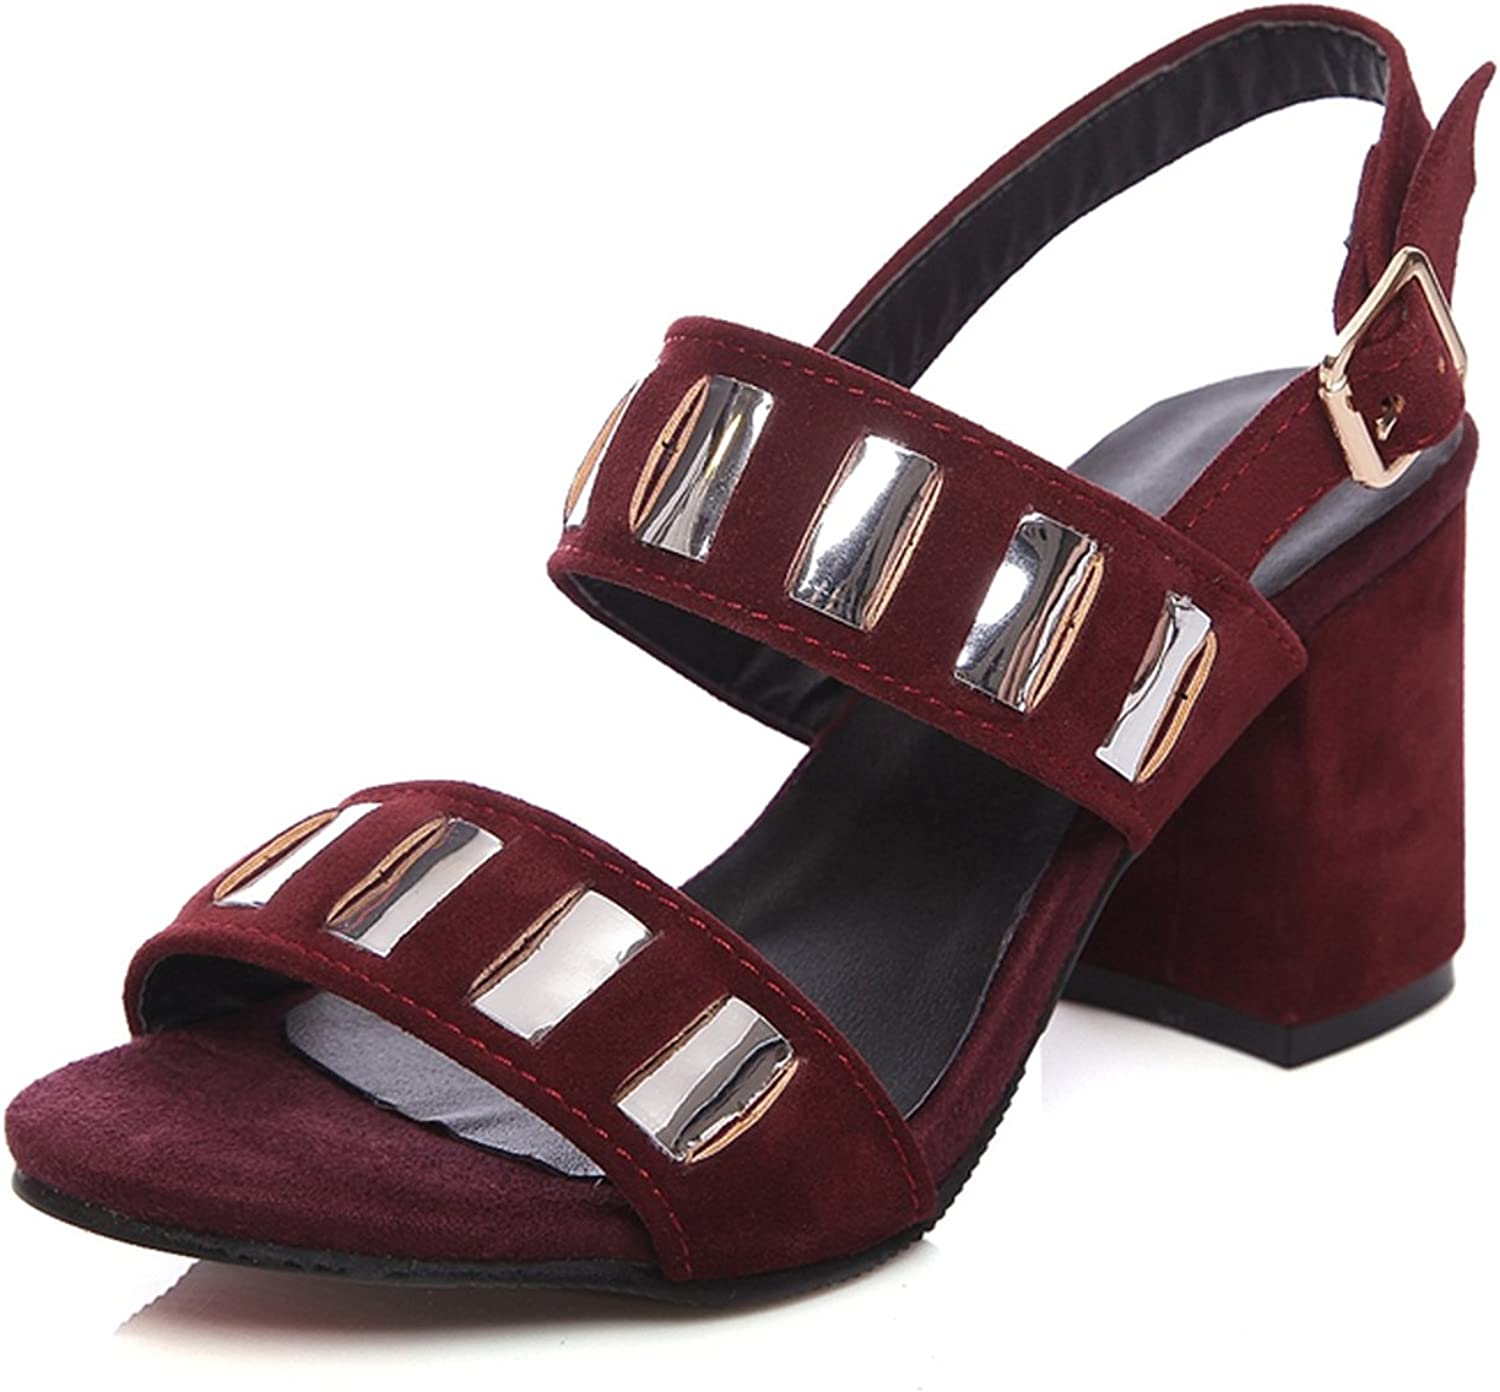 Nerefy Big Size 34-46 Crystals Ankle Strap Summer shoes Women Sandals Square High Heels Date Footwear